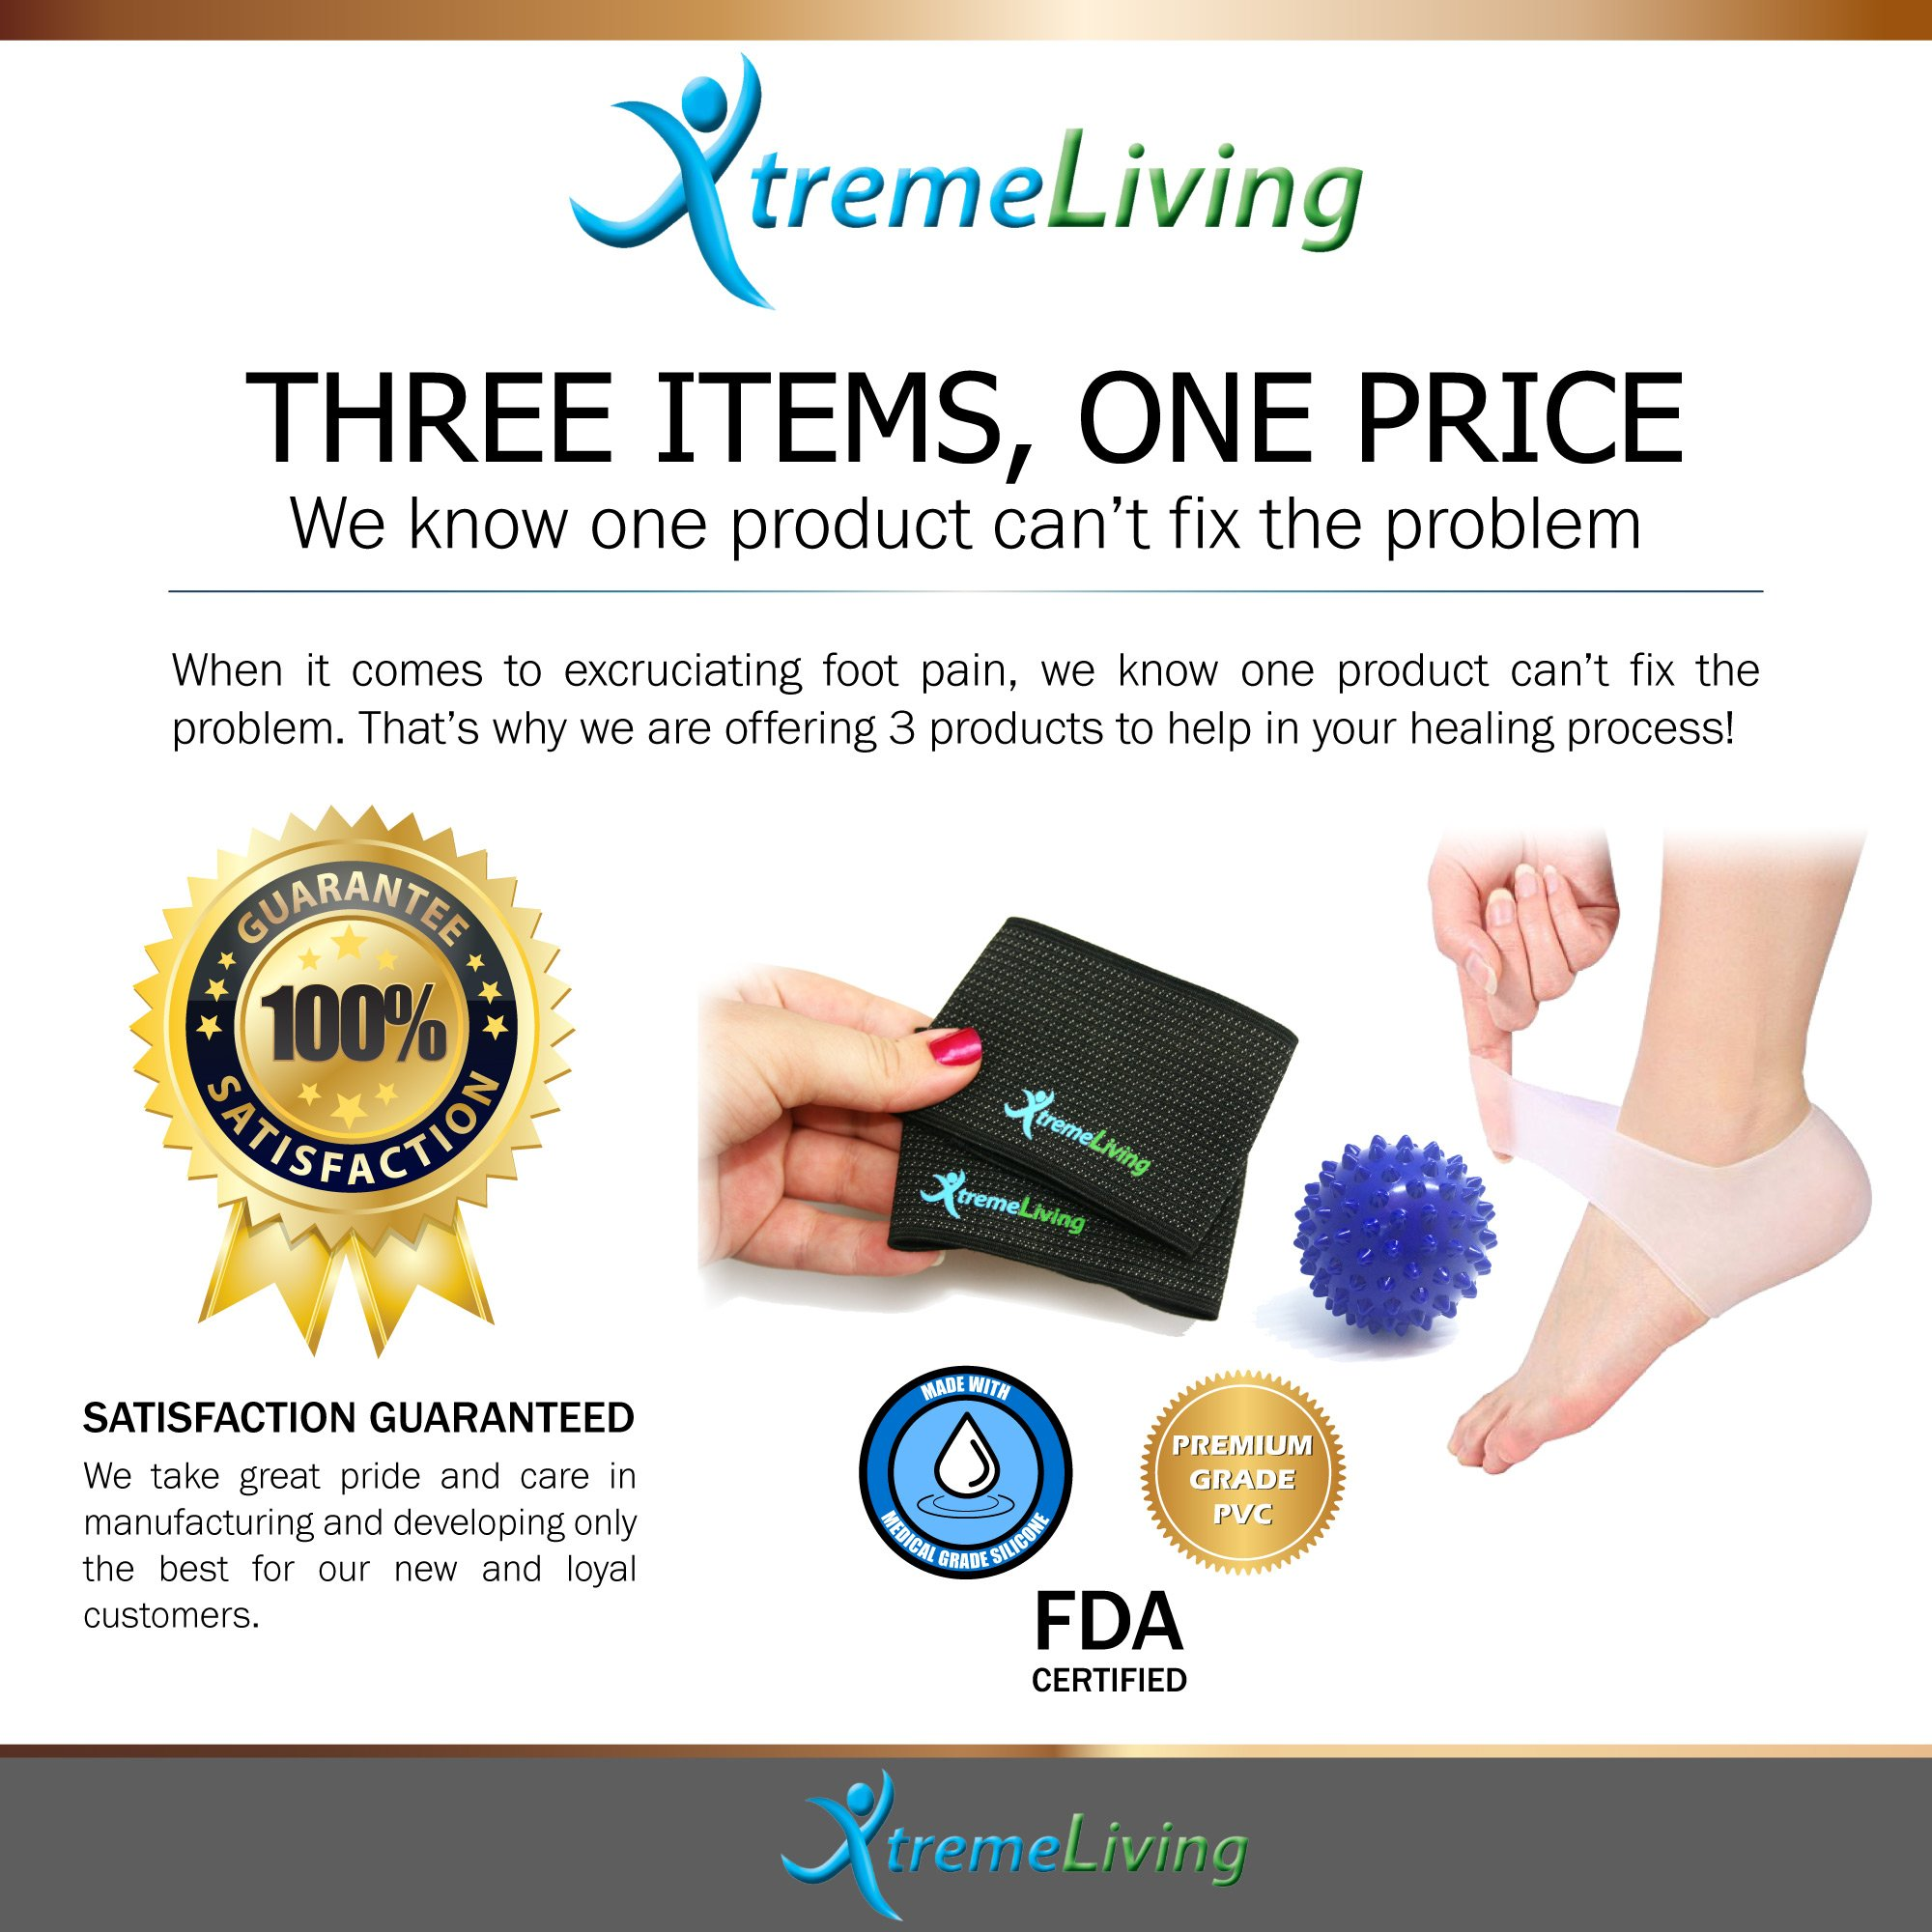 Plantar Fasciitis Compression Arch Support, 2 Arch Sleeves, 2 Gel Heel Sleeves, Massage Ball, 5pc Set by Xtreme Living (Image #5)